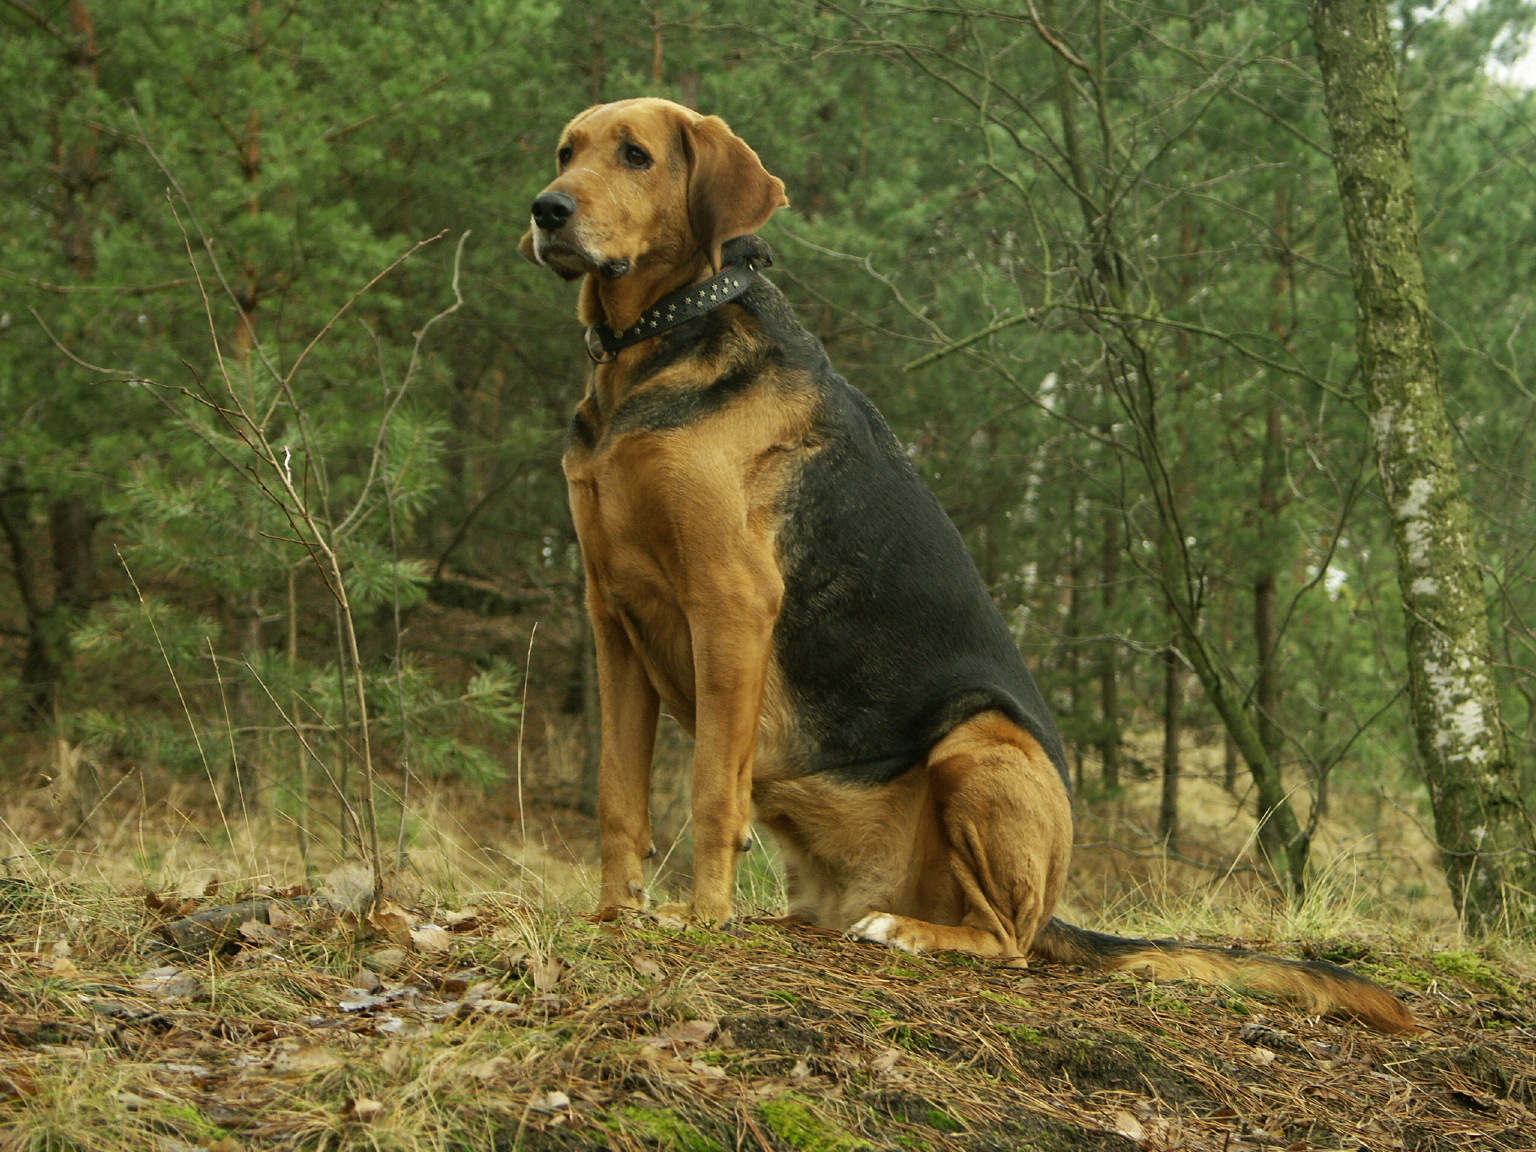 Polish Hound dog in the forest wallpaper